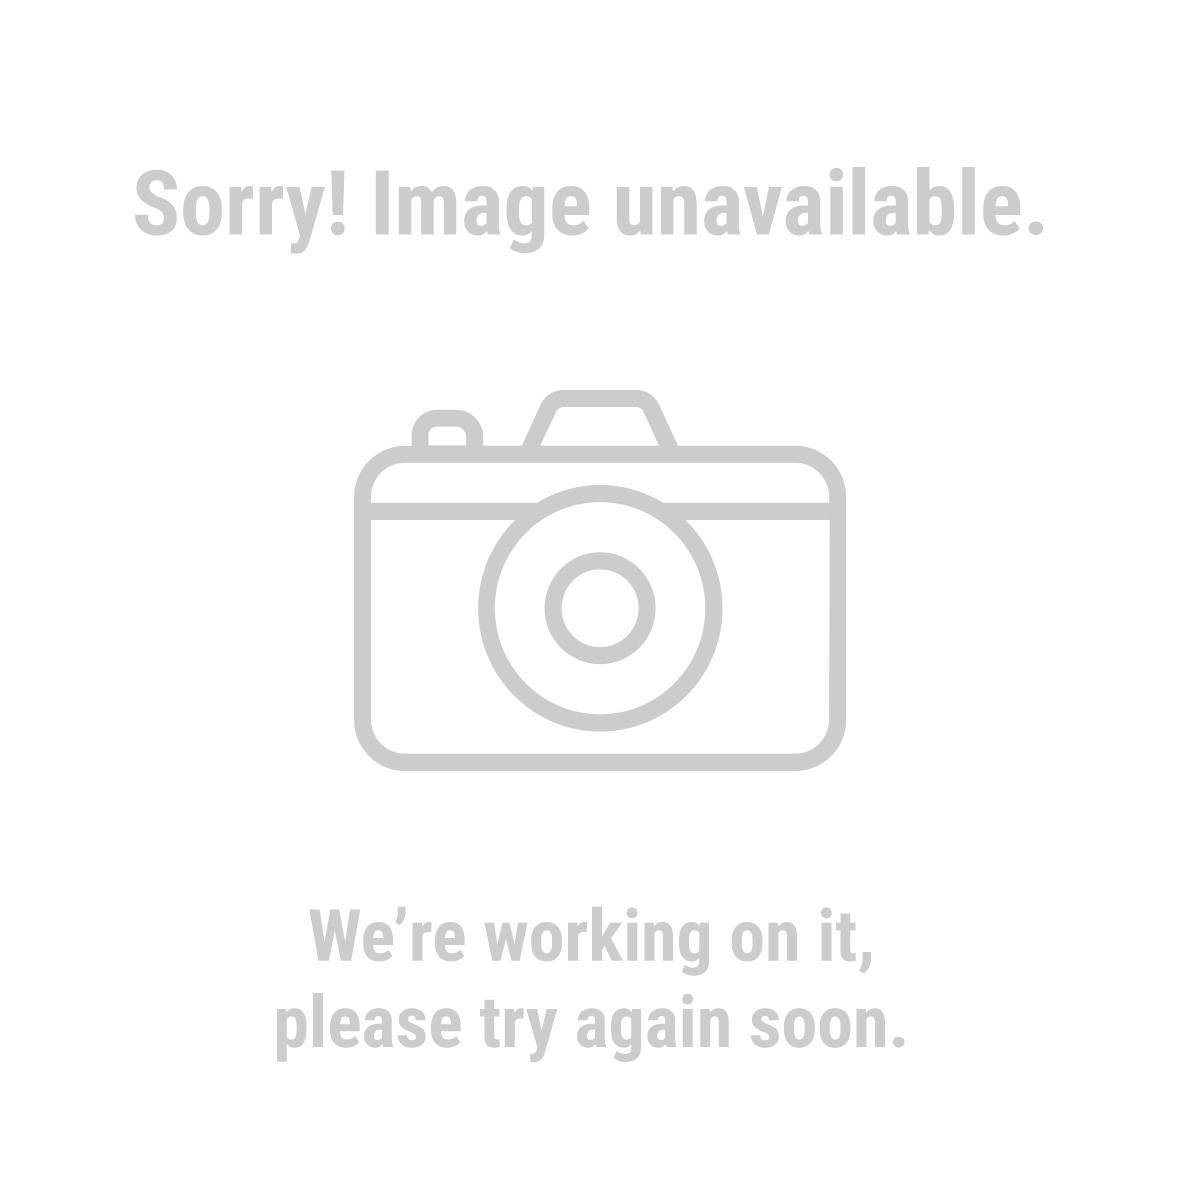 ShelterLogic 68763 10 ft. x 10 ft. Pop-Up Canopy with White Cover